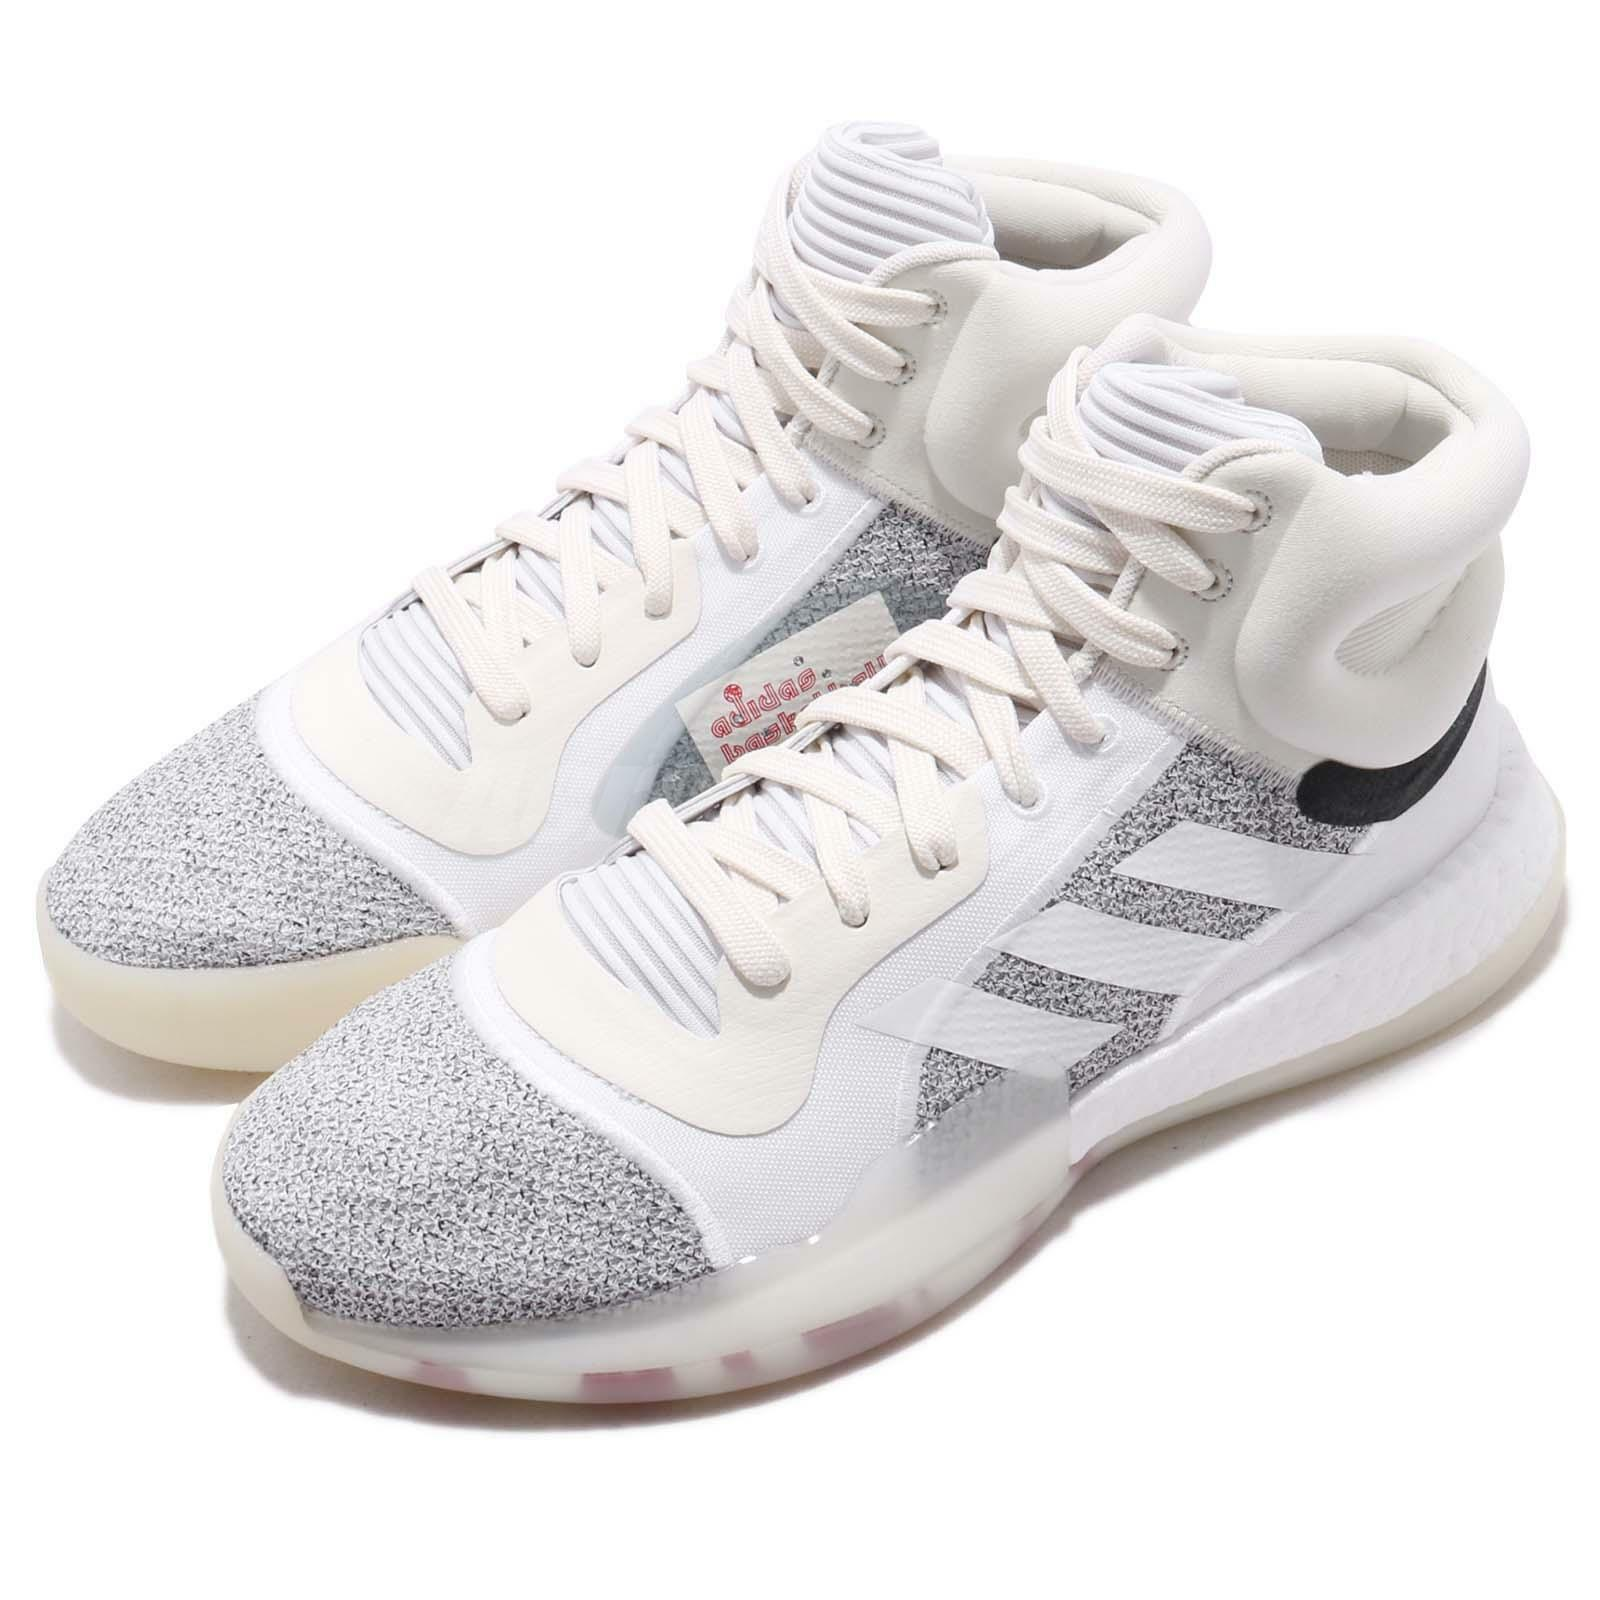 Adidas Marquee Boost Off White Solid Grey Men Basketball shoes Sneakers G28978